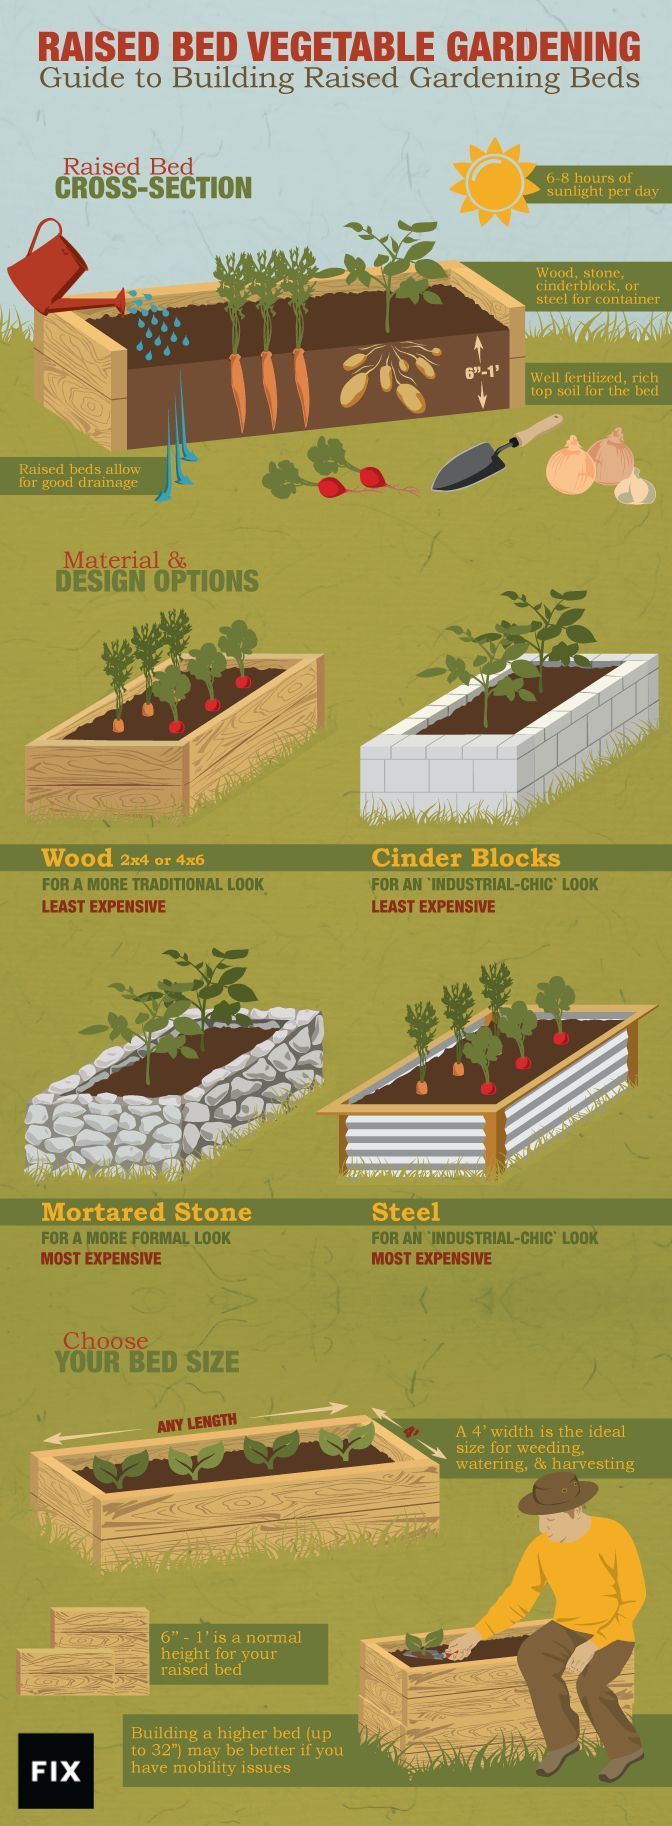 Best 25+ Diy raised garden beds ideas on Pinterest